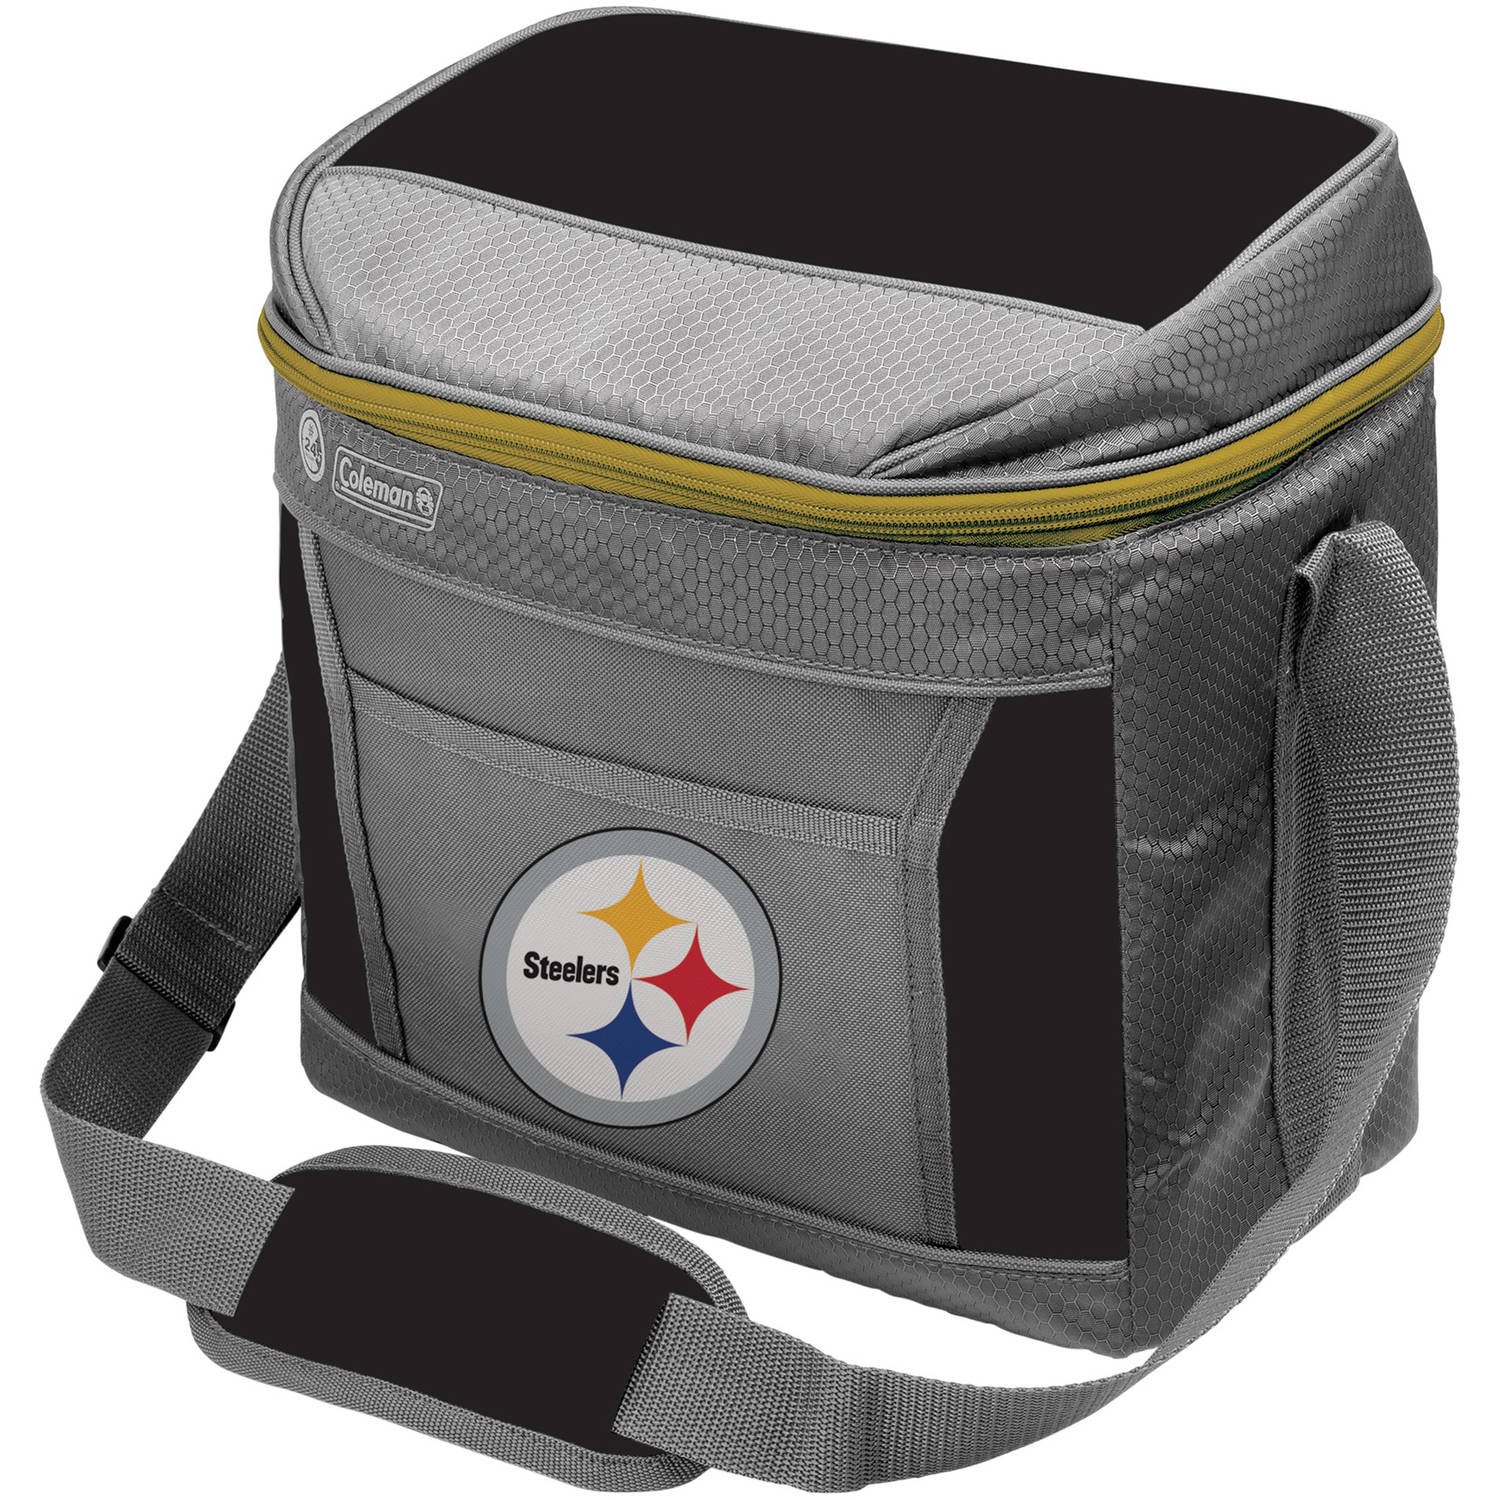 NFL 16-Can Soft-Sided Cooler, Pittsburgh